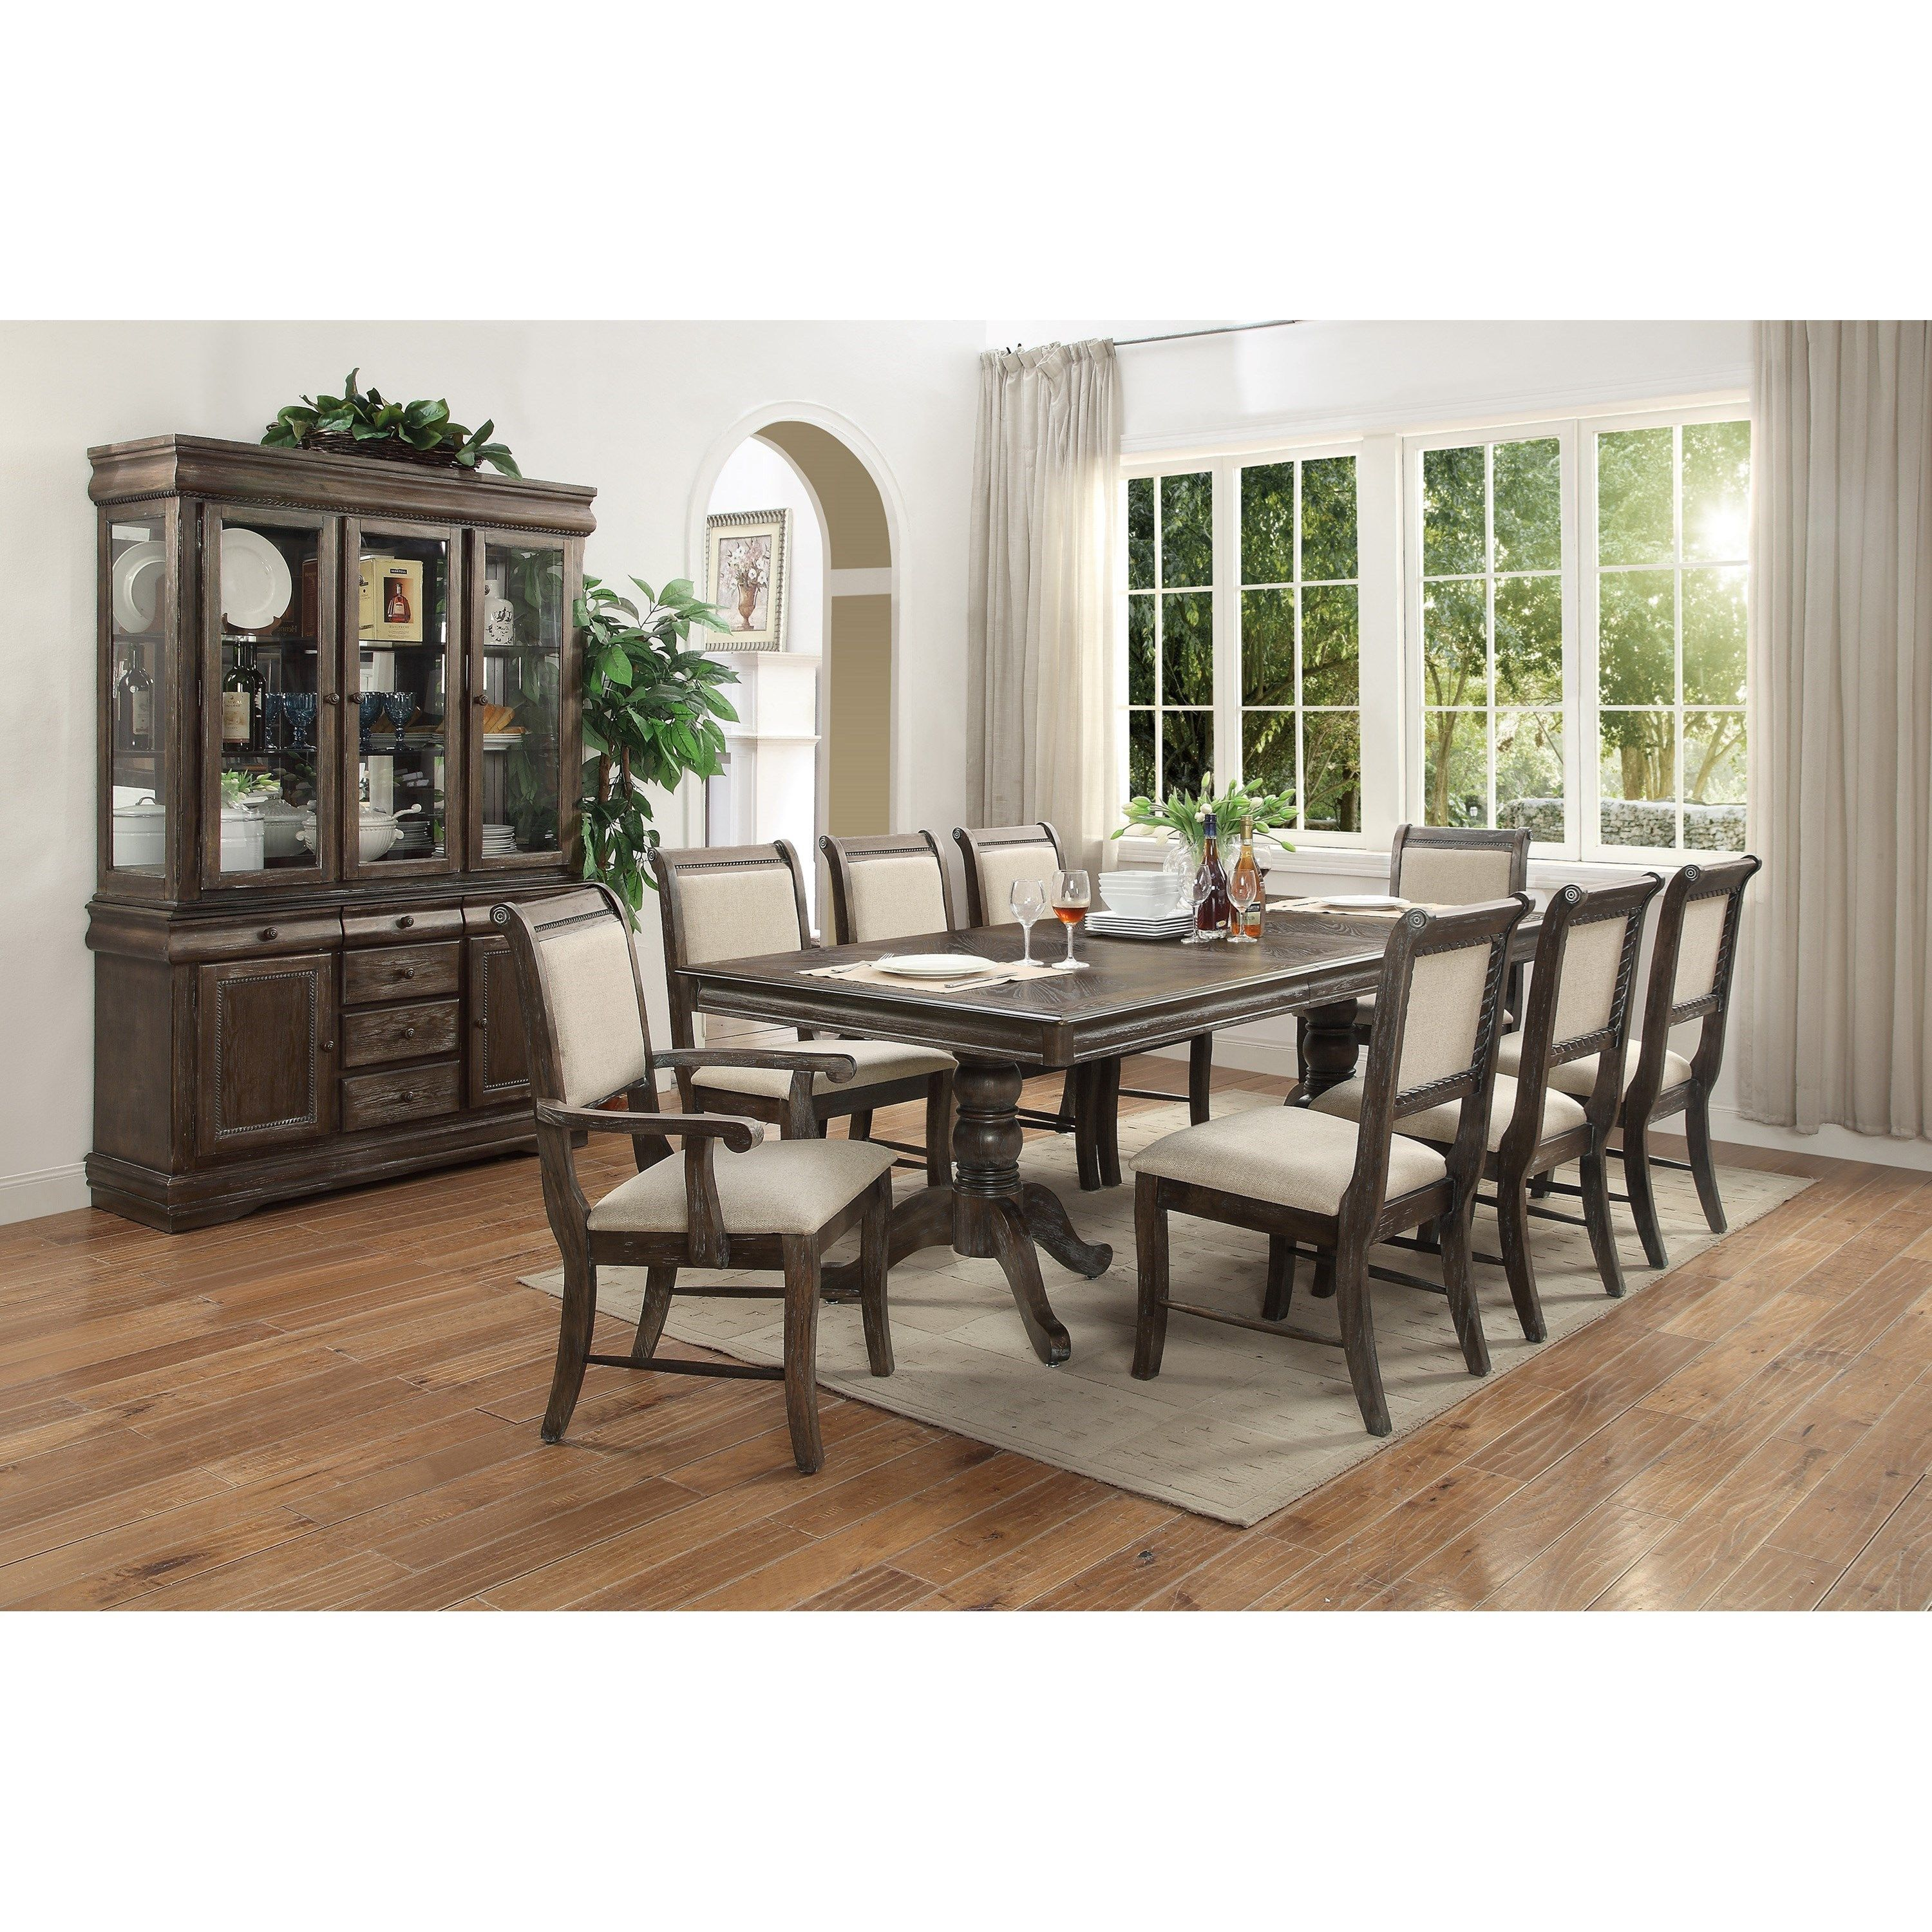 Merlot Formal Dining Room Group By